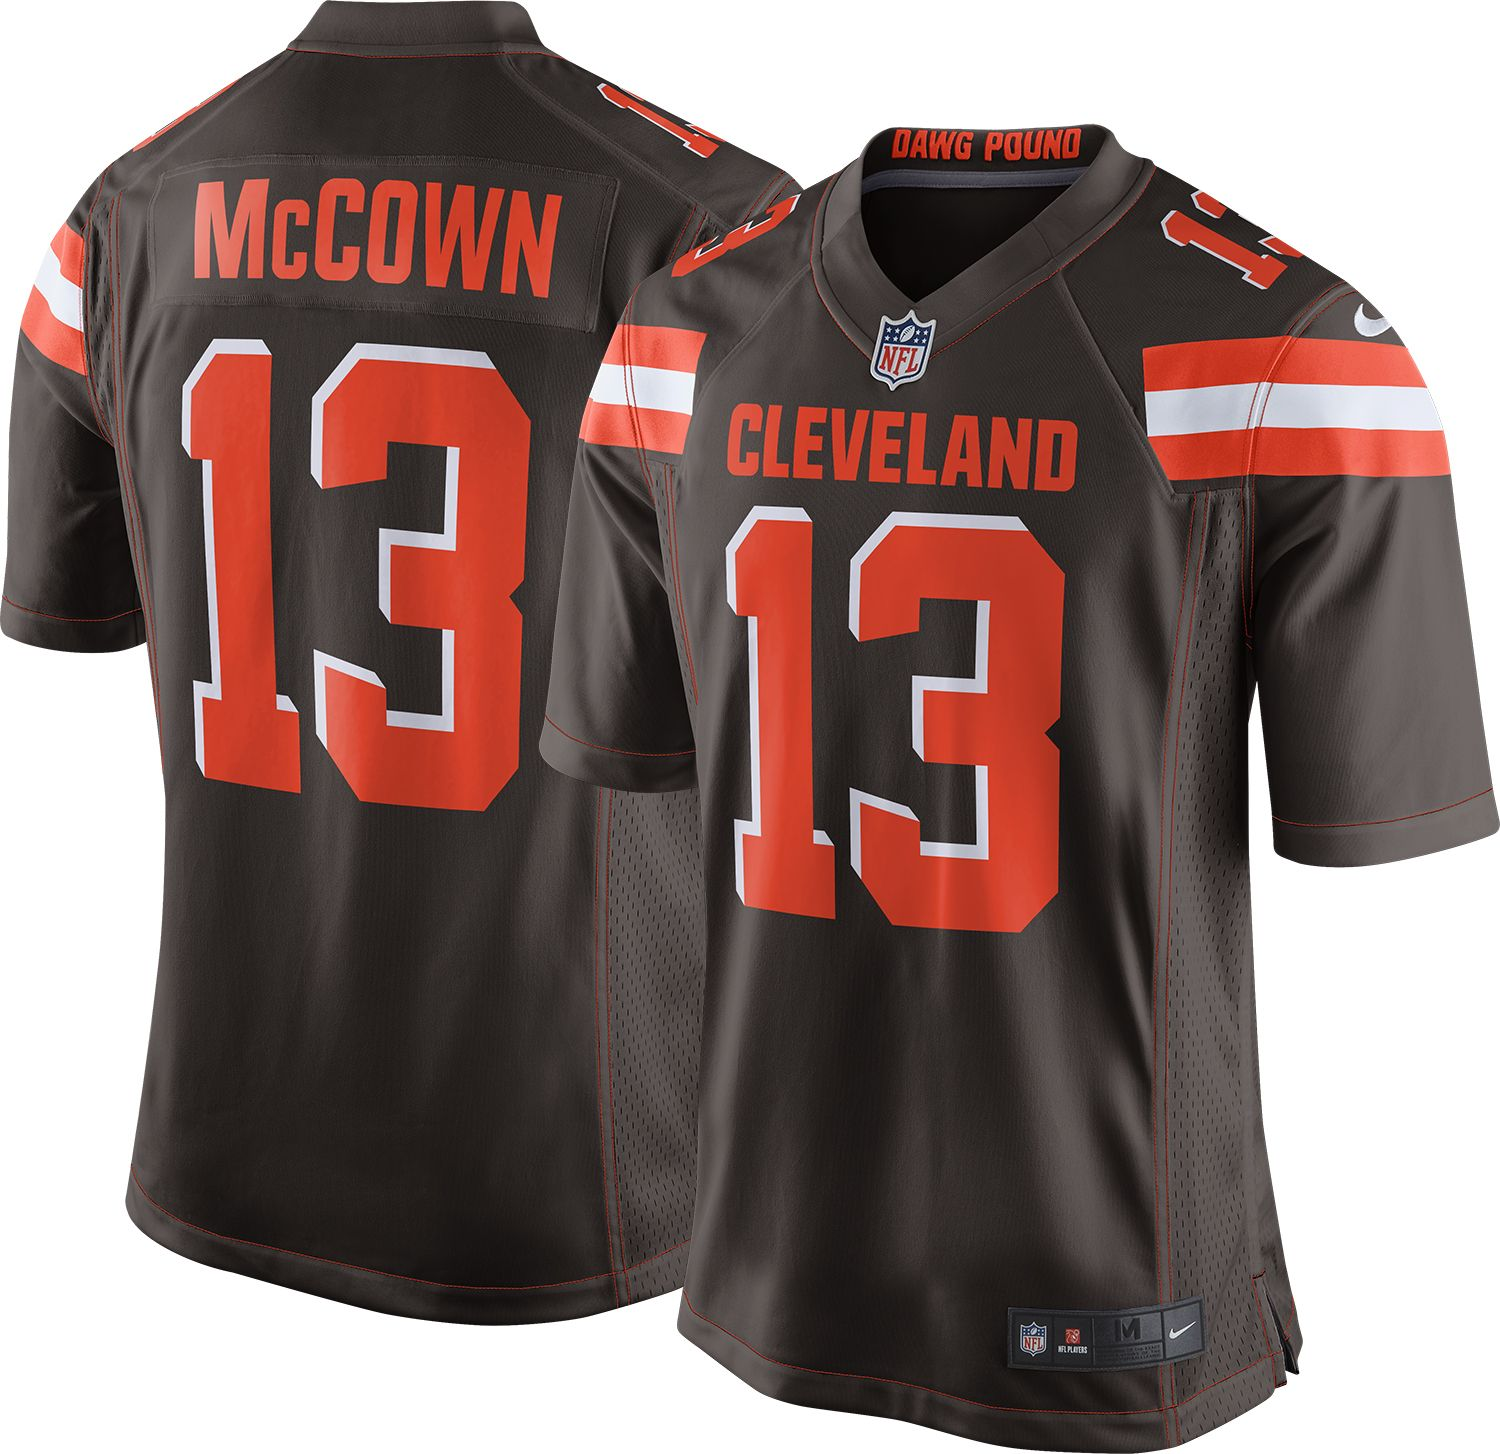 josh mccown color rush jersey